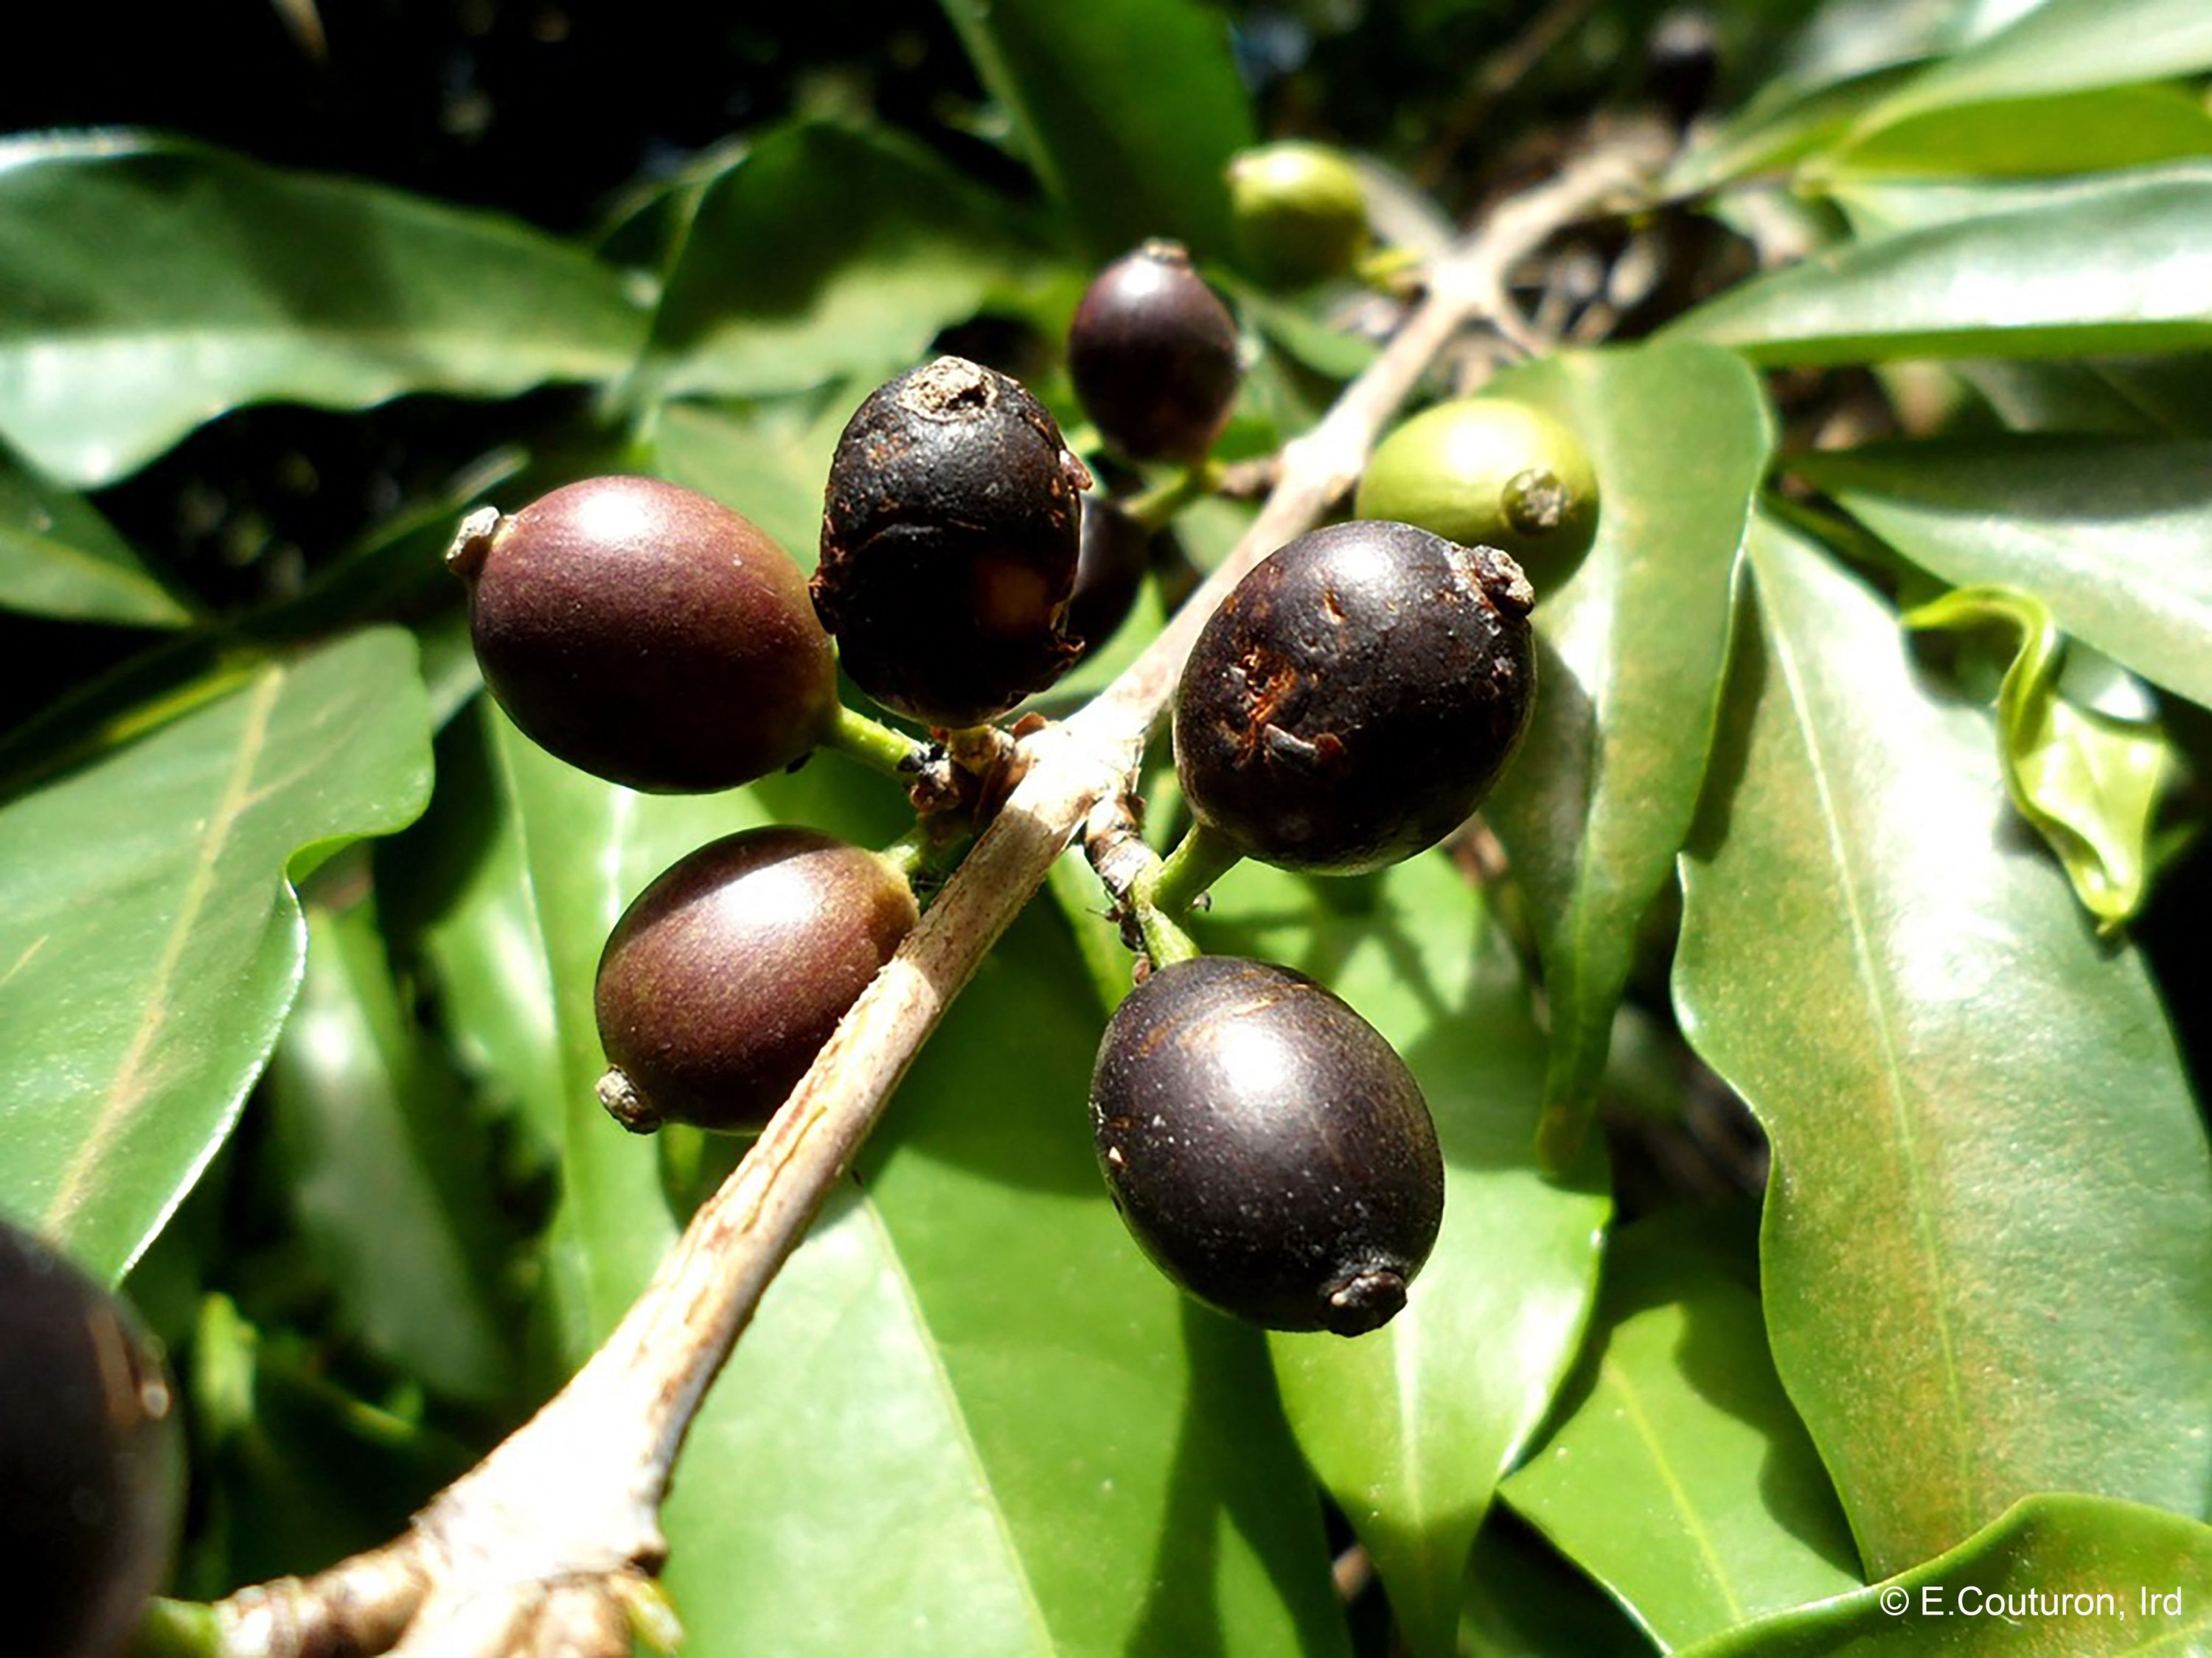 This handout photograph released by IRD on April 19, 2021, shows Coffea stenophylla plants at an undisclosed location in Ivory Coast on August 24, 2013. (Photo by E. COUTURON/IRD via AFP)